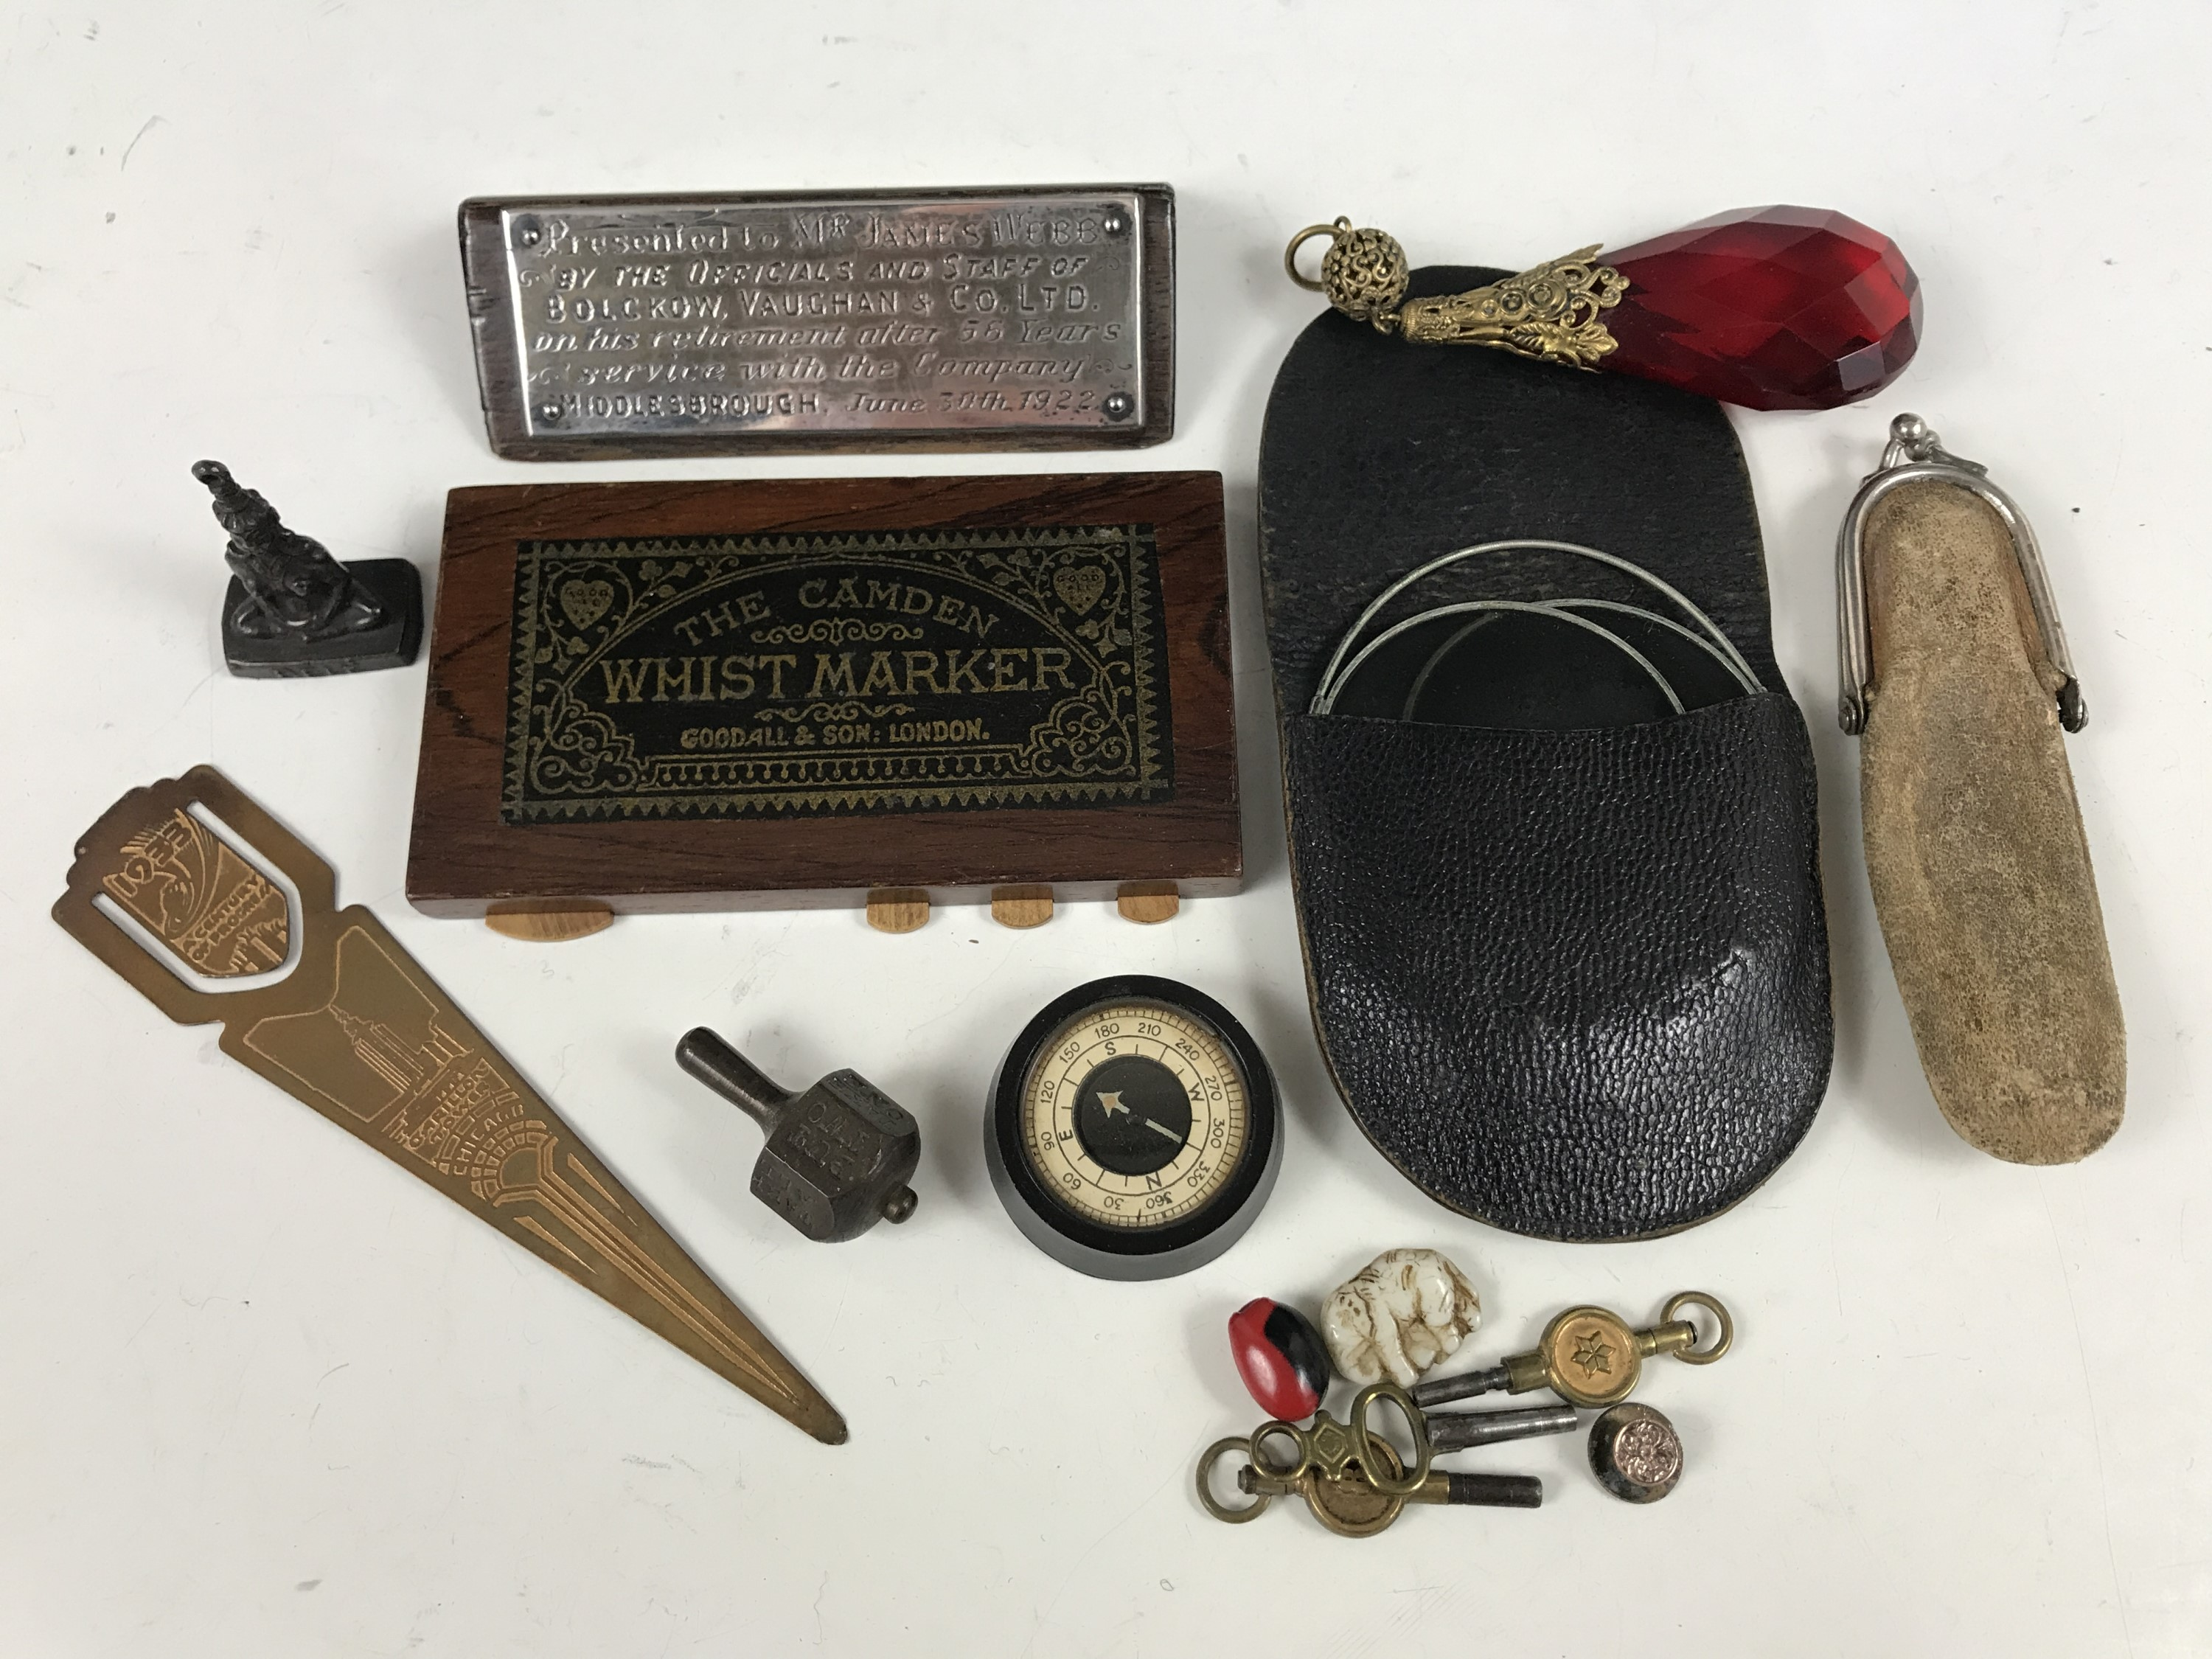 Lot 47 - Sundry collectors' items including a 1933 Chicago bookmark, a pill spinner, a compass, pocket